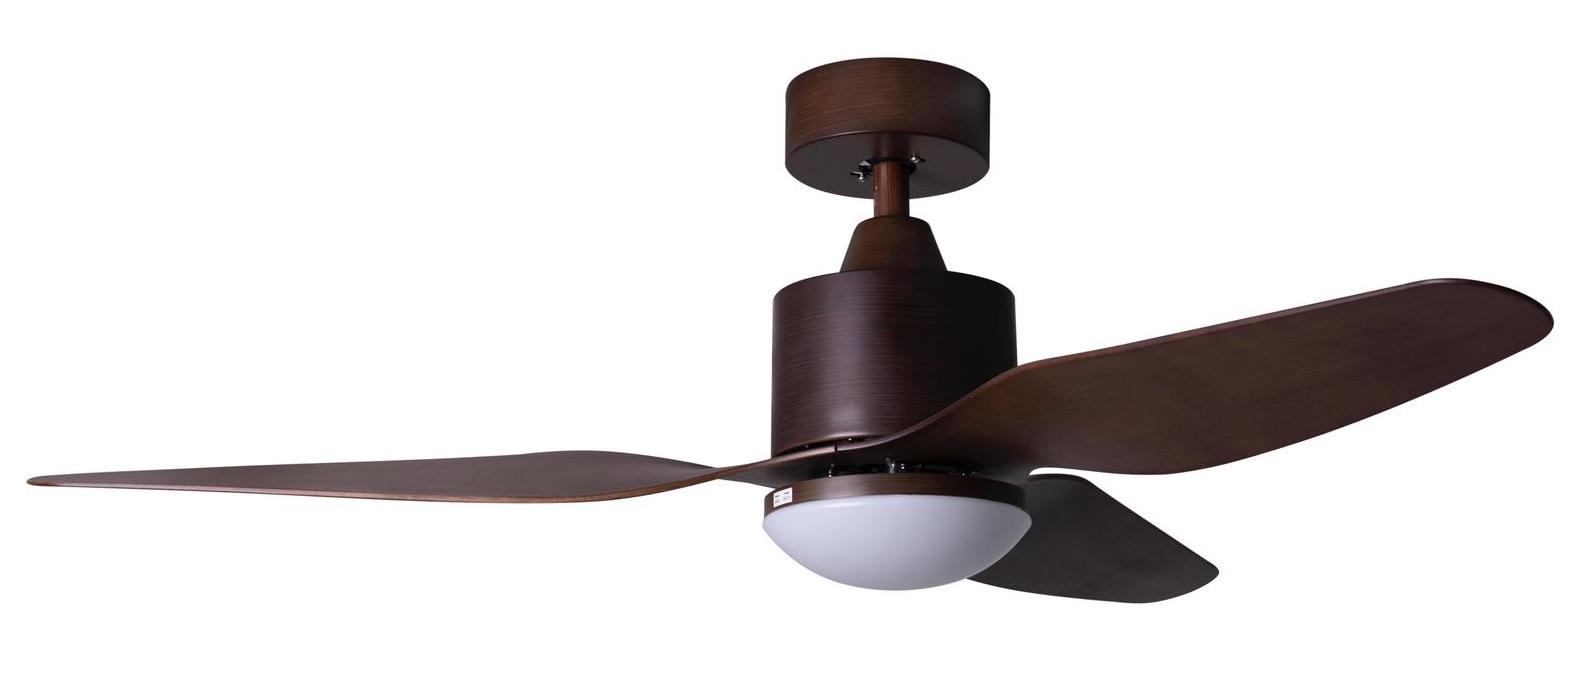 crestar-ninja-air-wood-ceiling-fan-sembawang-lighting-house.jpg